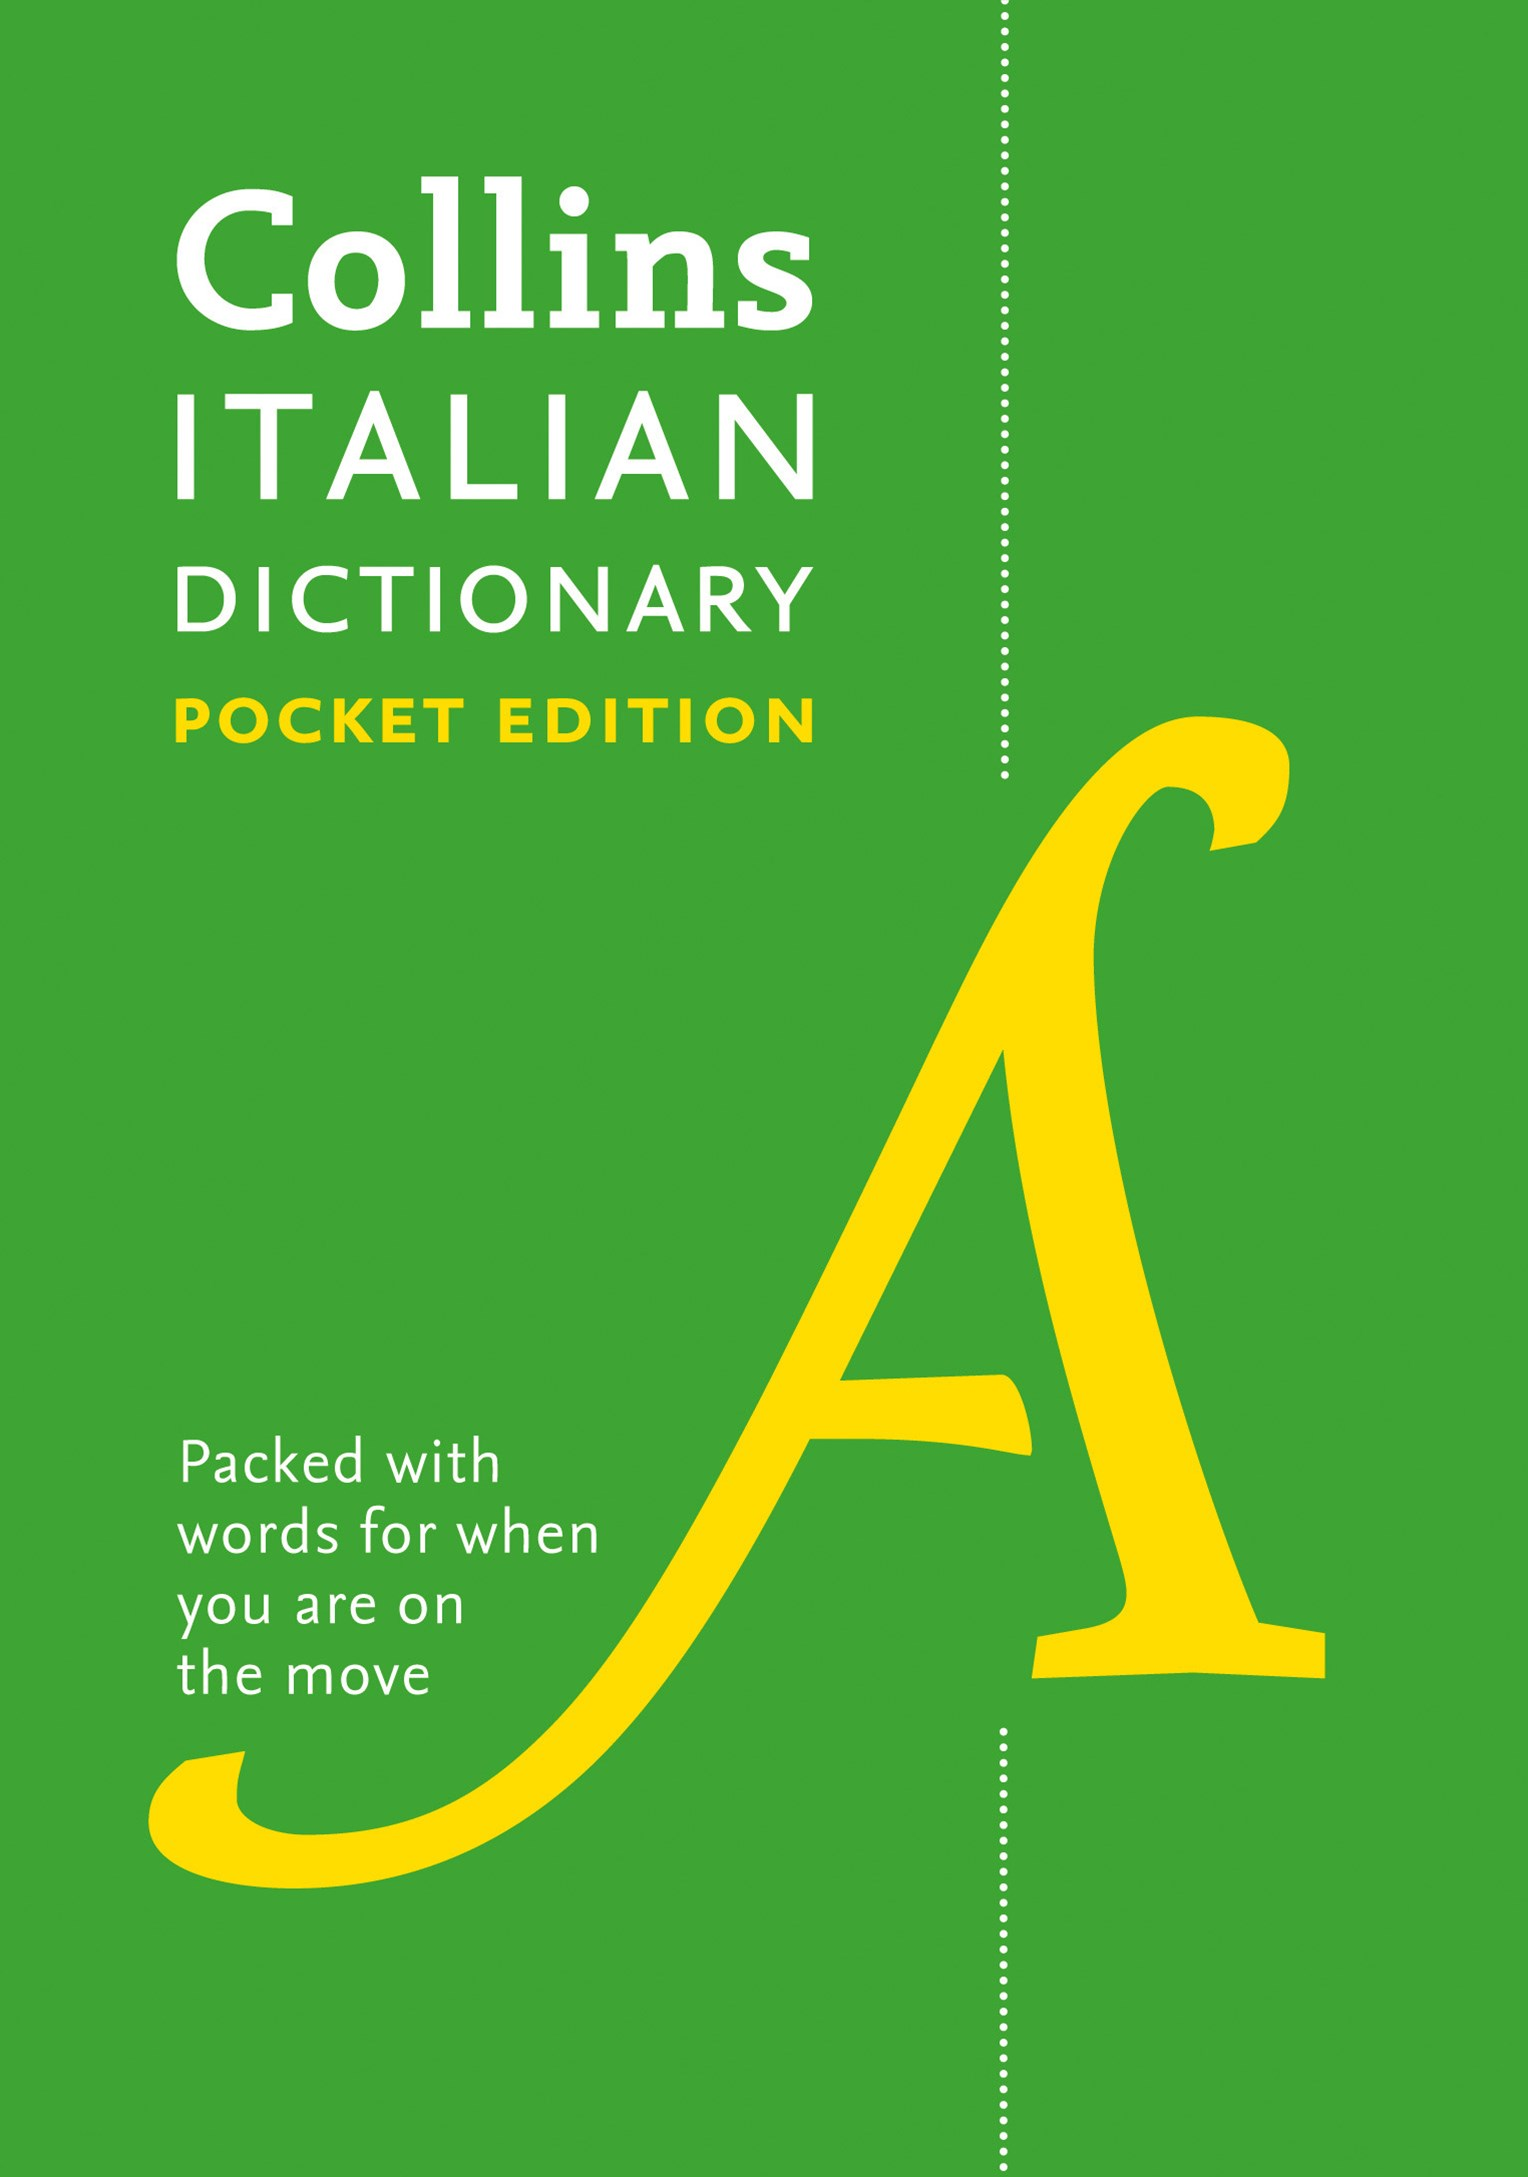 Collins Pocket Italian Dictionary [7th Edition]